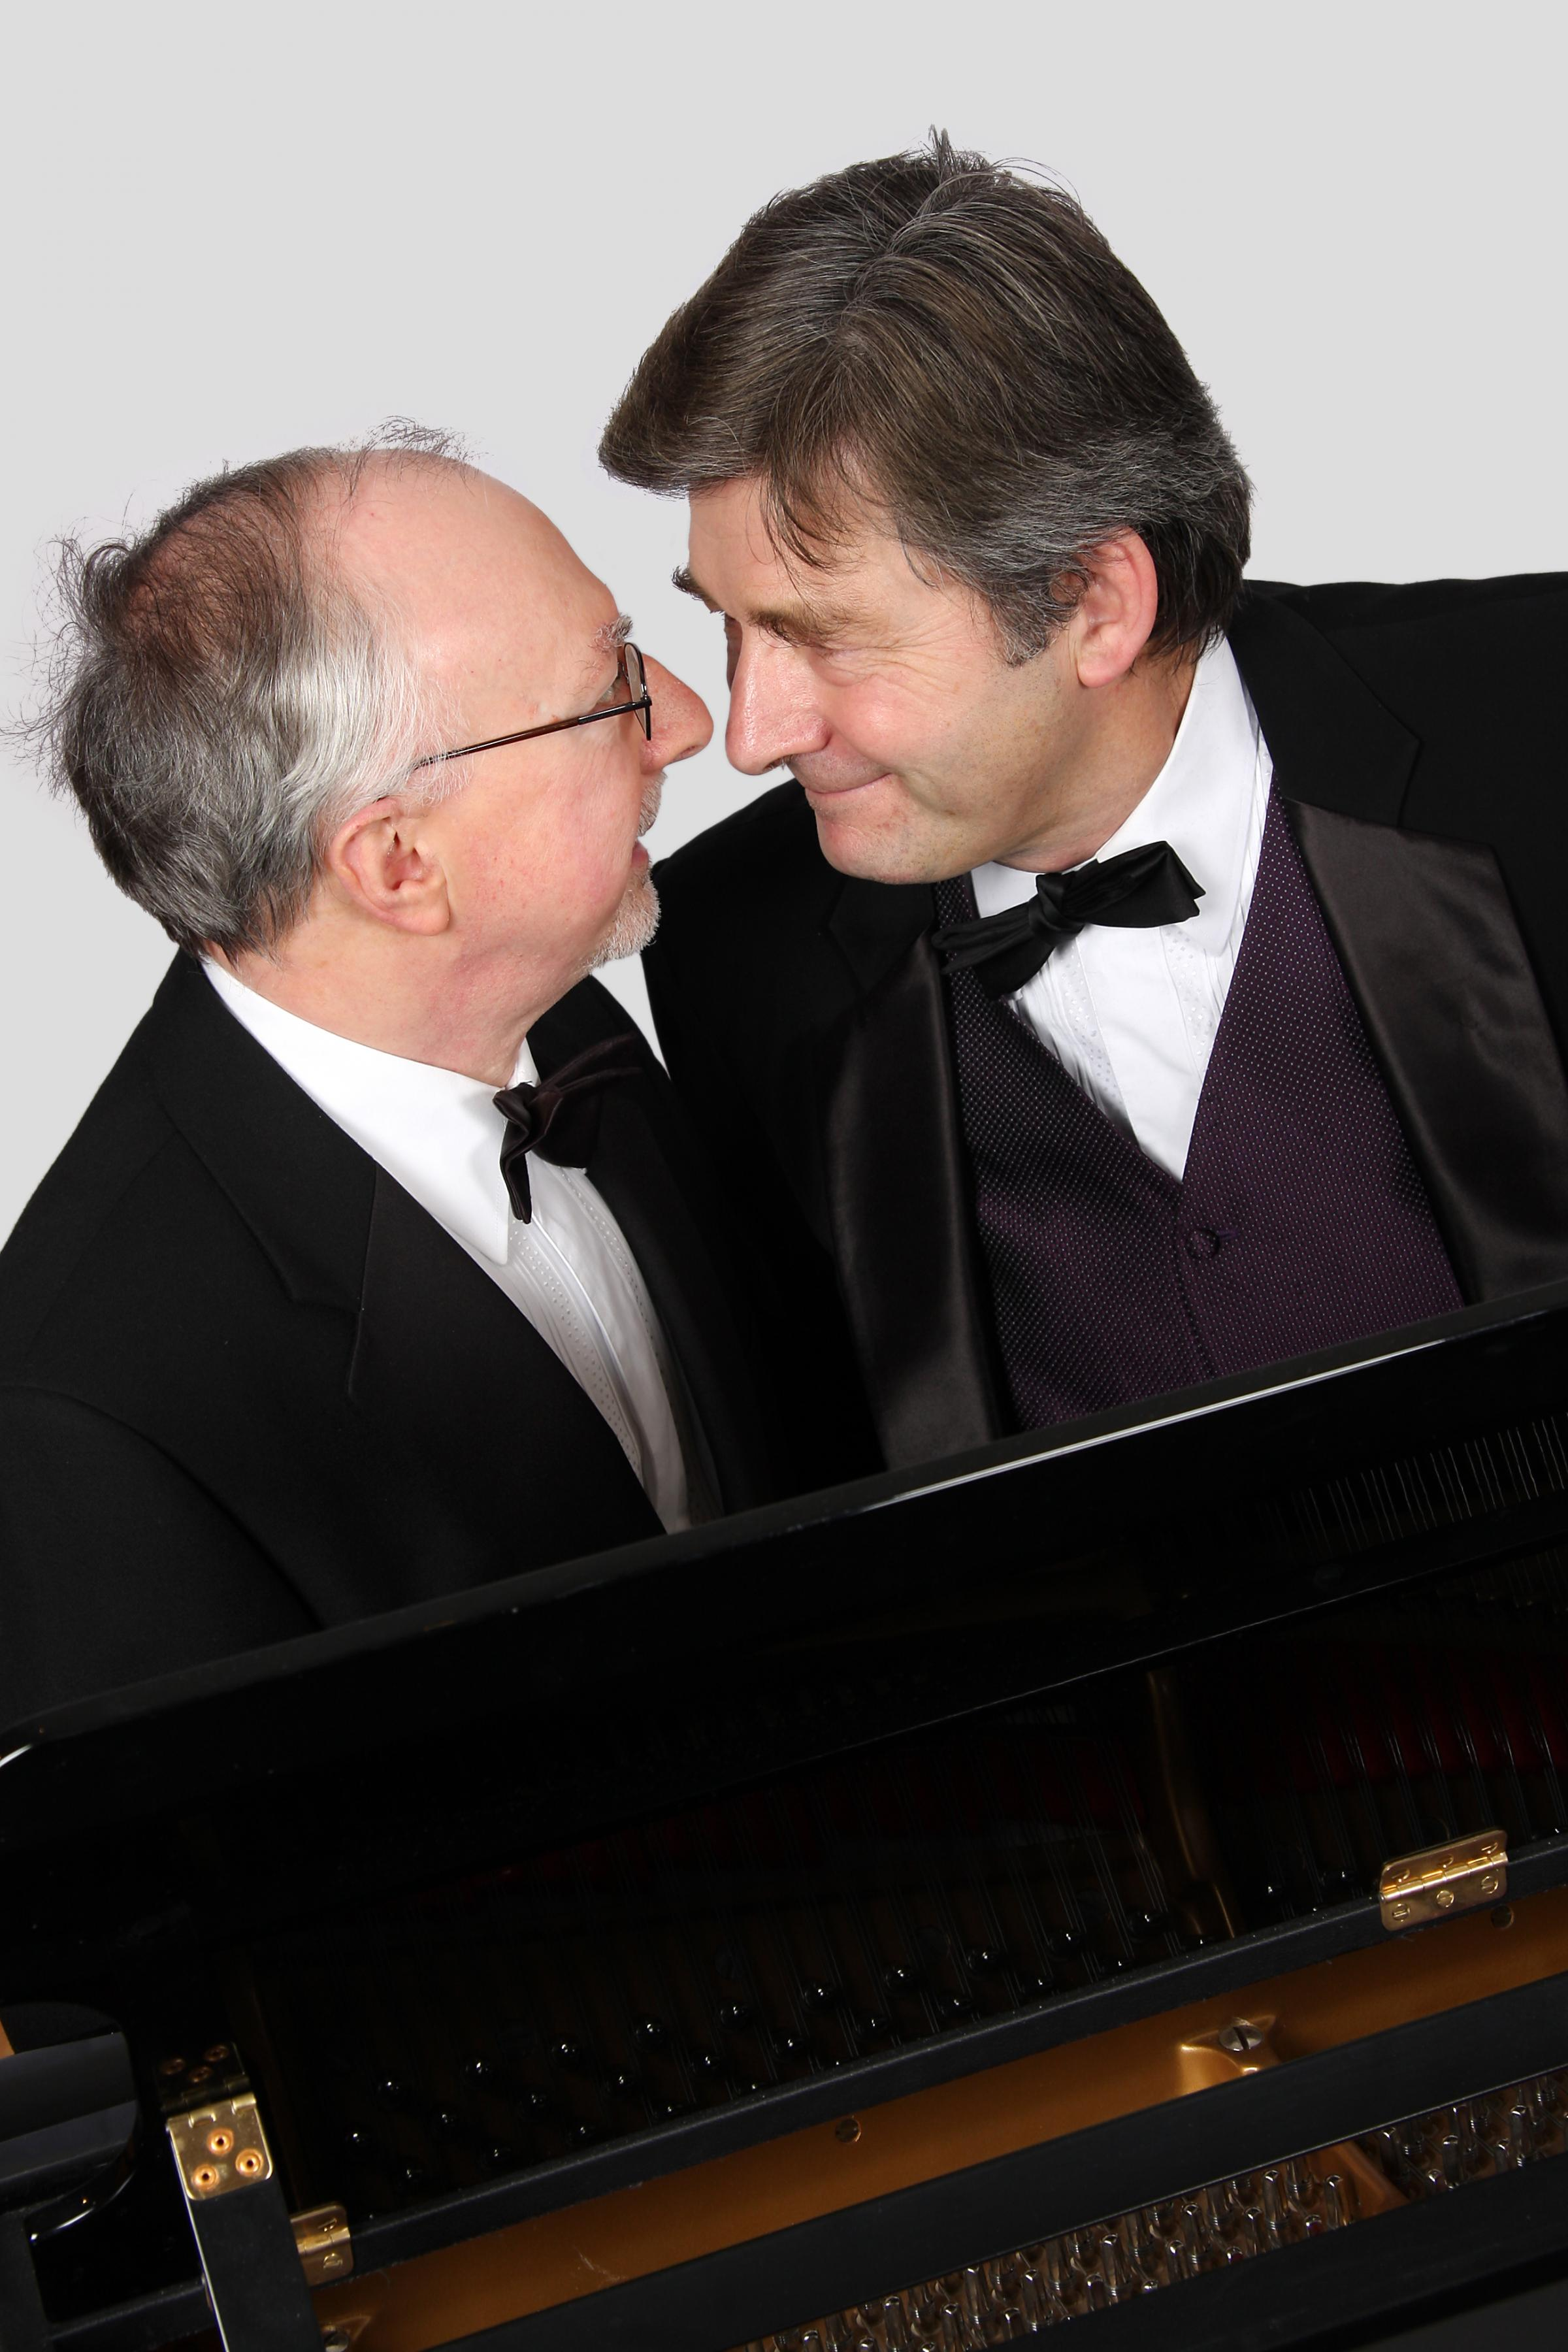 Two Blokes and a Piano: James Mitchell and Grahame O'Connor